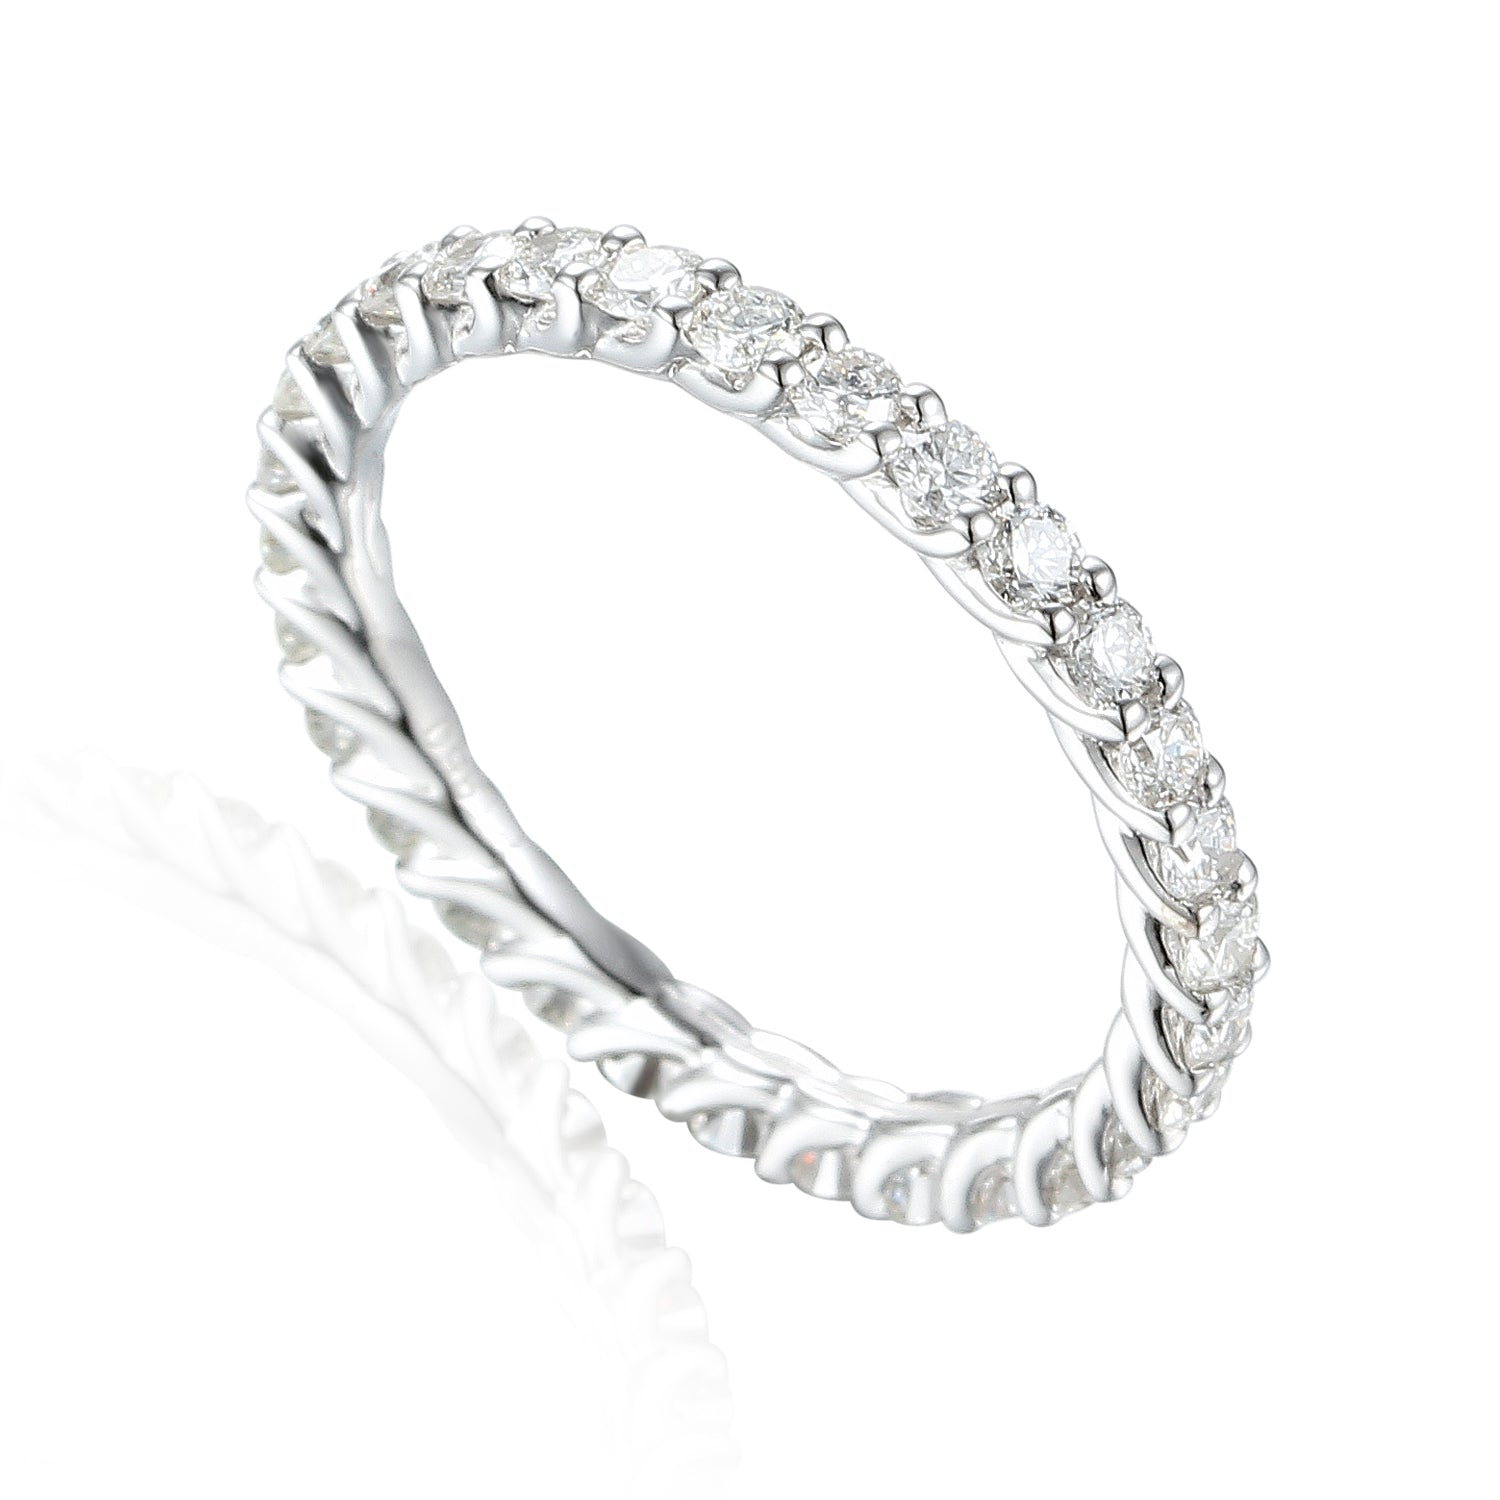 kaplan products cut jewelers diamonds bands with diamond twist wedding lazare gold white band judith lk full arnell